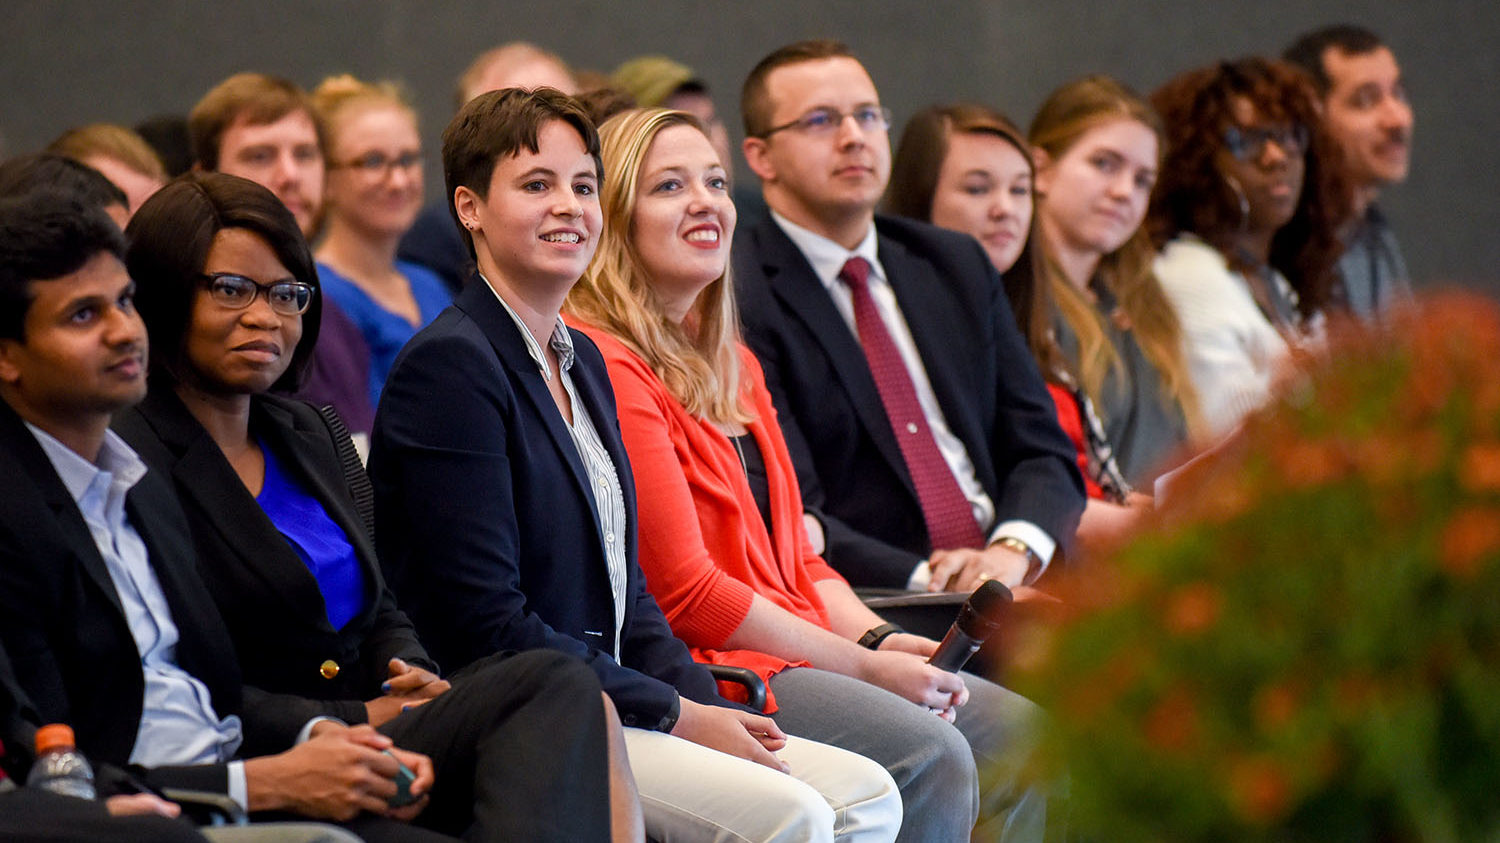 Three minute thesis finalists seated watching another 3 minute thesis presentation.